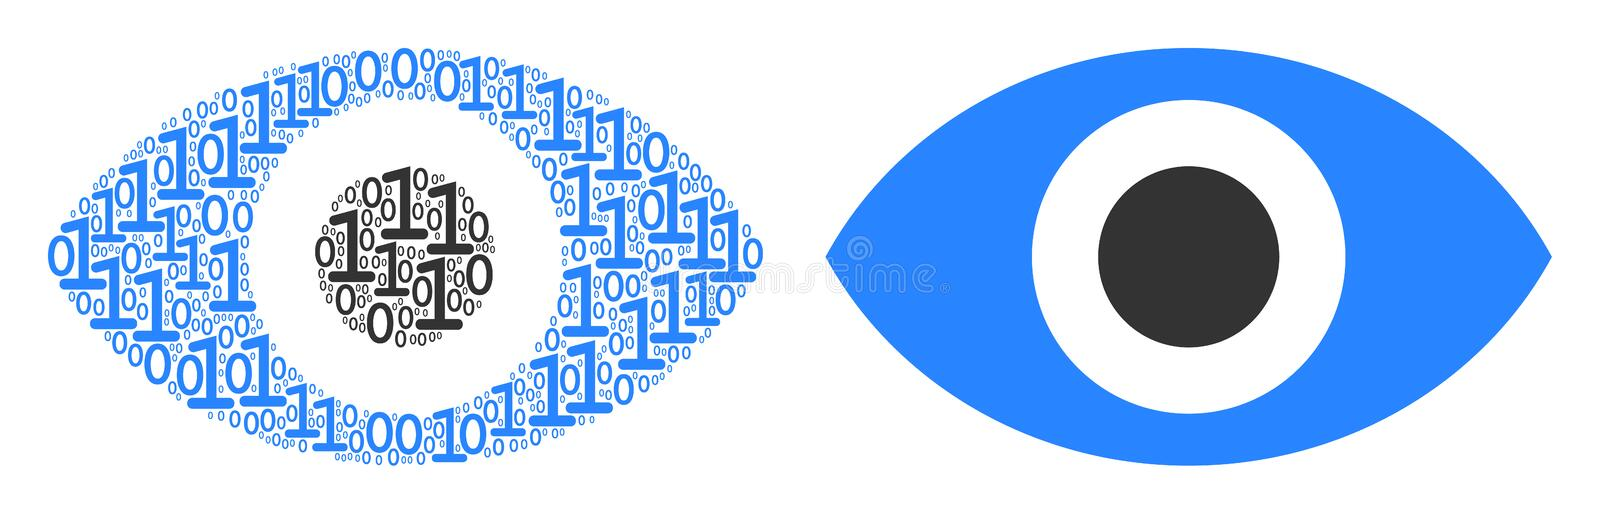 Eye Collage of Binary Digits. Eye composition icon of zero and null digits in different sizes. Vector digit symbols are composed into eye mosaic design concept royalty free illustration